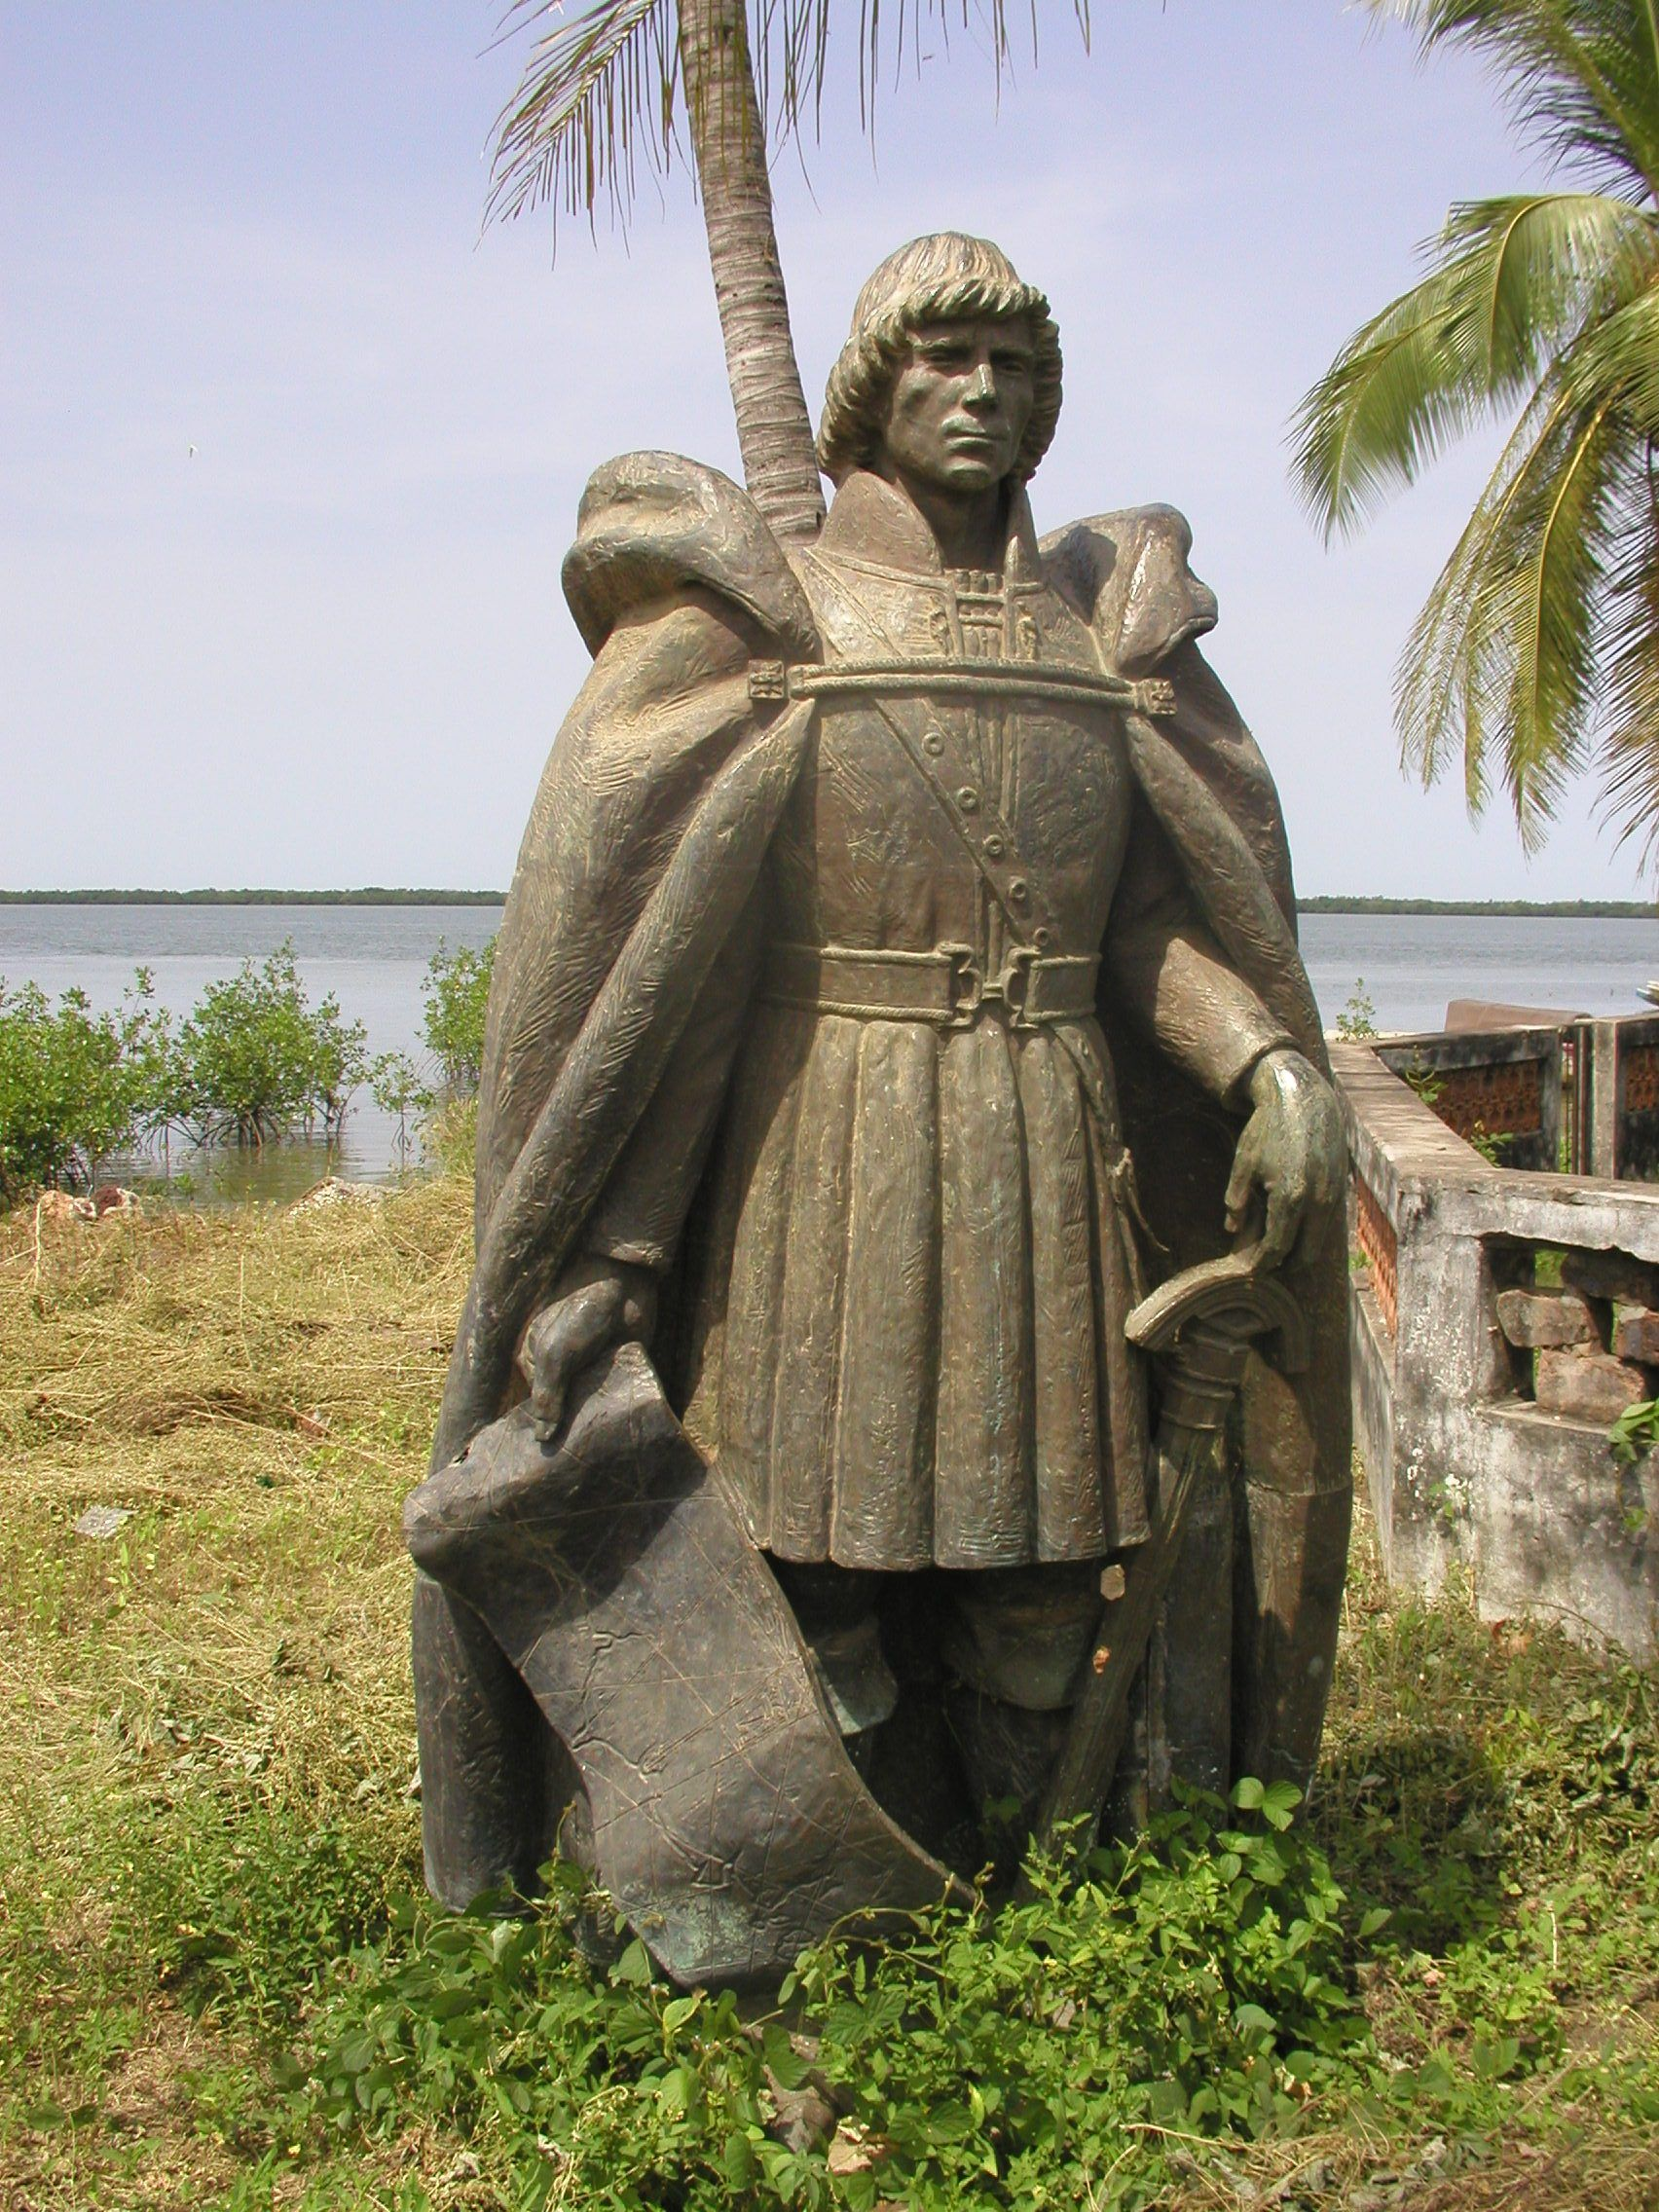 Nuno Tristão. Portuguese explorer and slave trader, active in the early 1440s, traditionally thought to be the first European to reach the region of Guinea